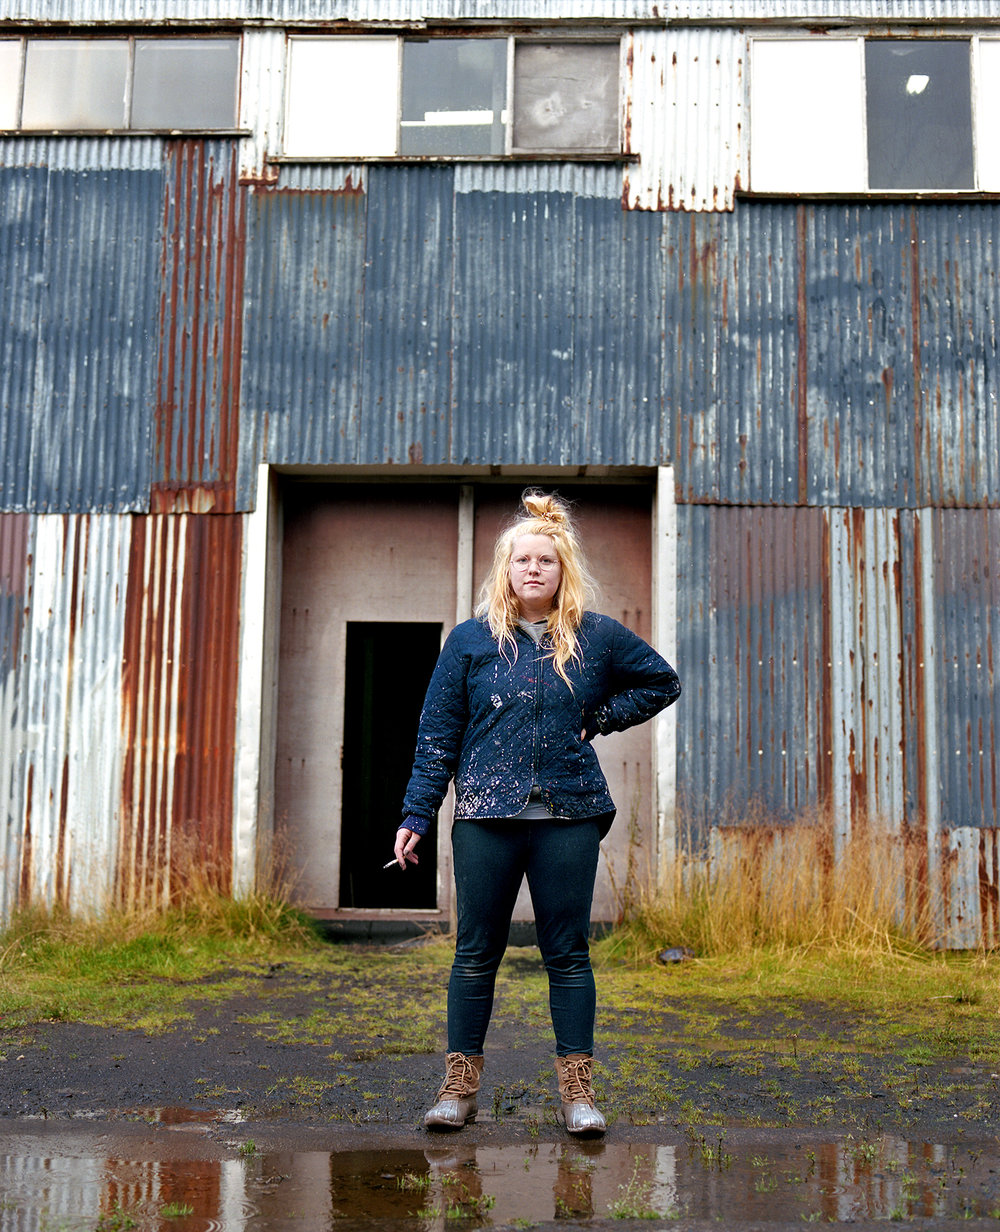 Heidi outside the Fish Factory She is working towards creating an artist residency of her own on her family farm. She is also working towards obtaining a school bus to transform into a traveling residency. This residency would create pop up shows as it travels the states.